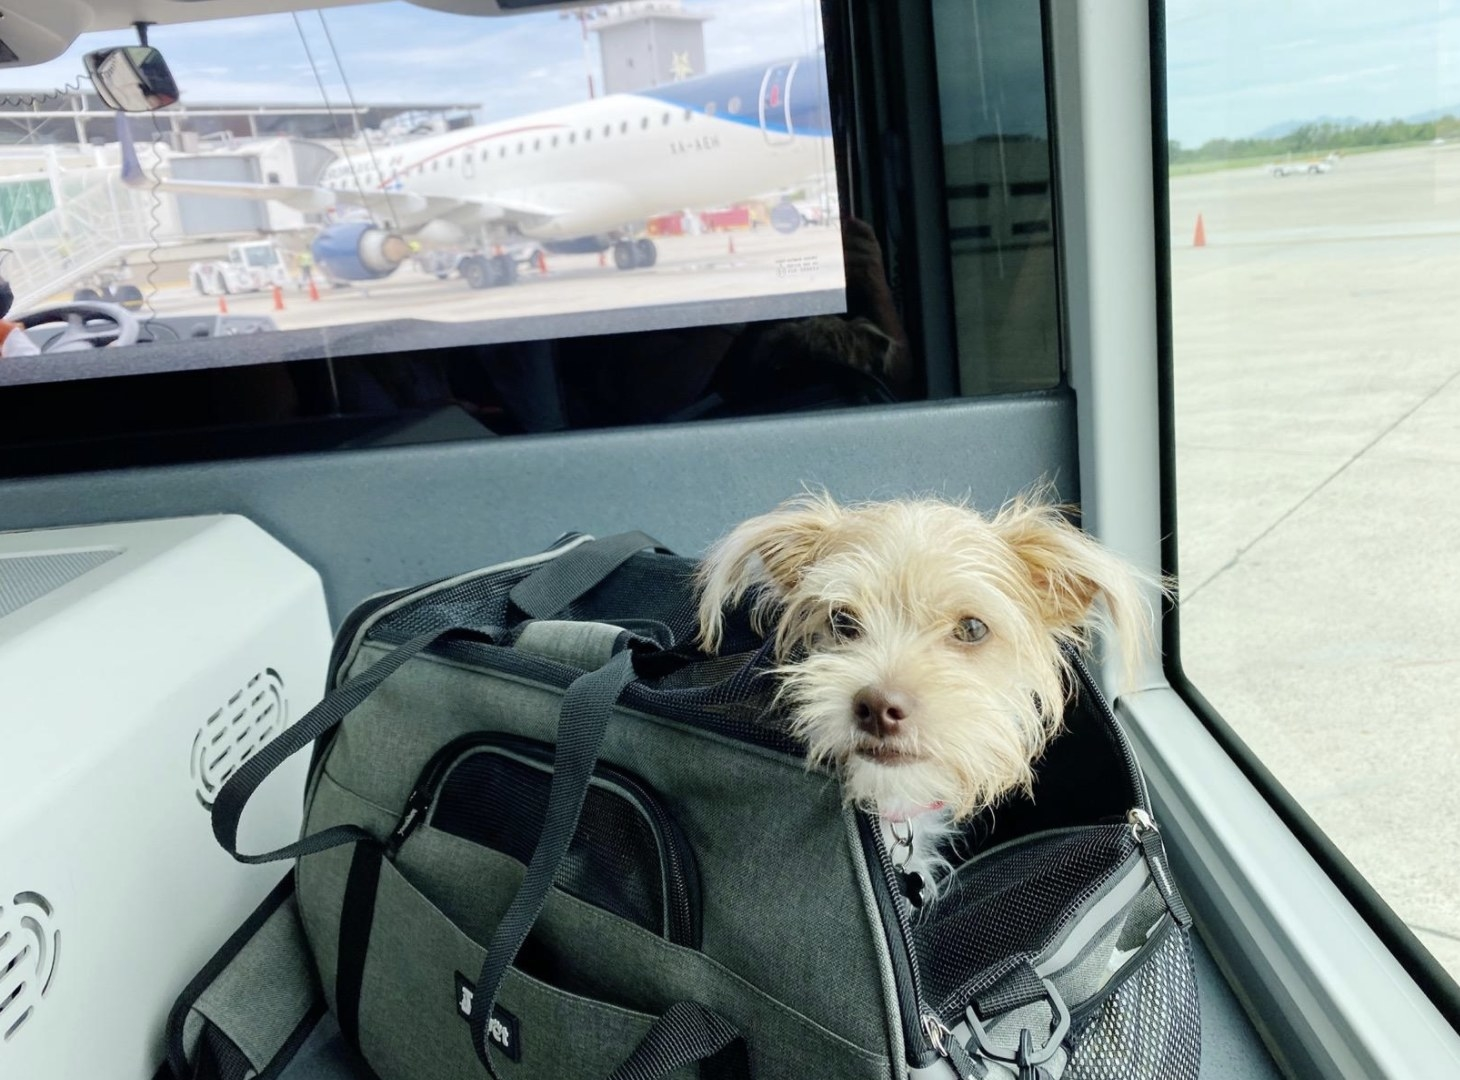 A dog is sitting inside a soft-sided pet carrier at a terminal at an airport with its head out of the bag